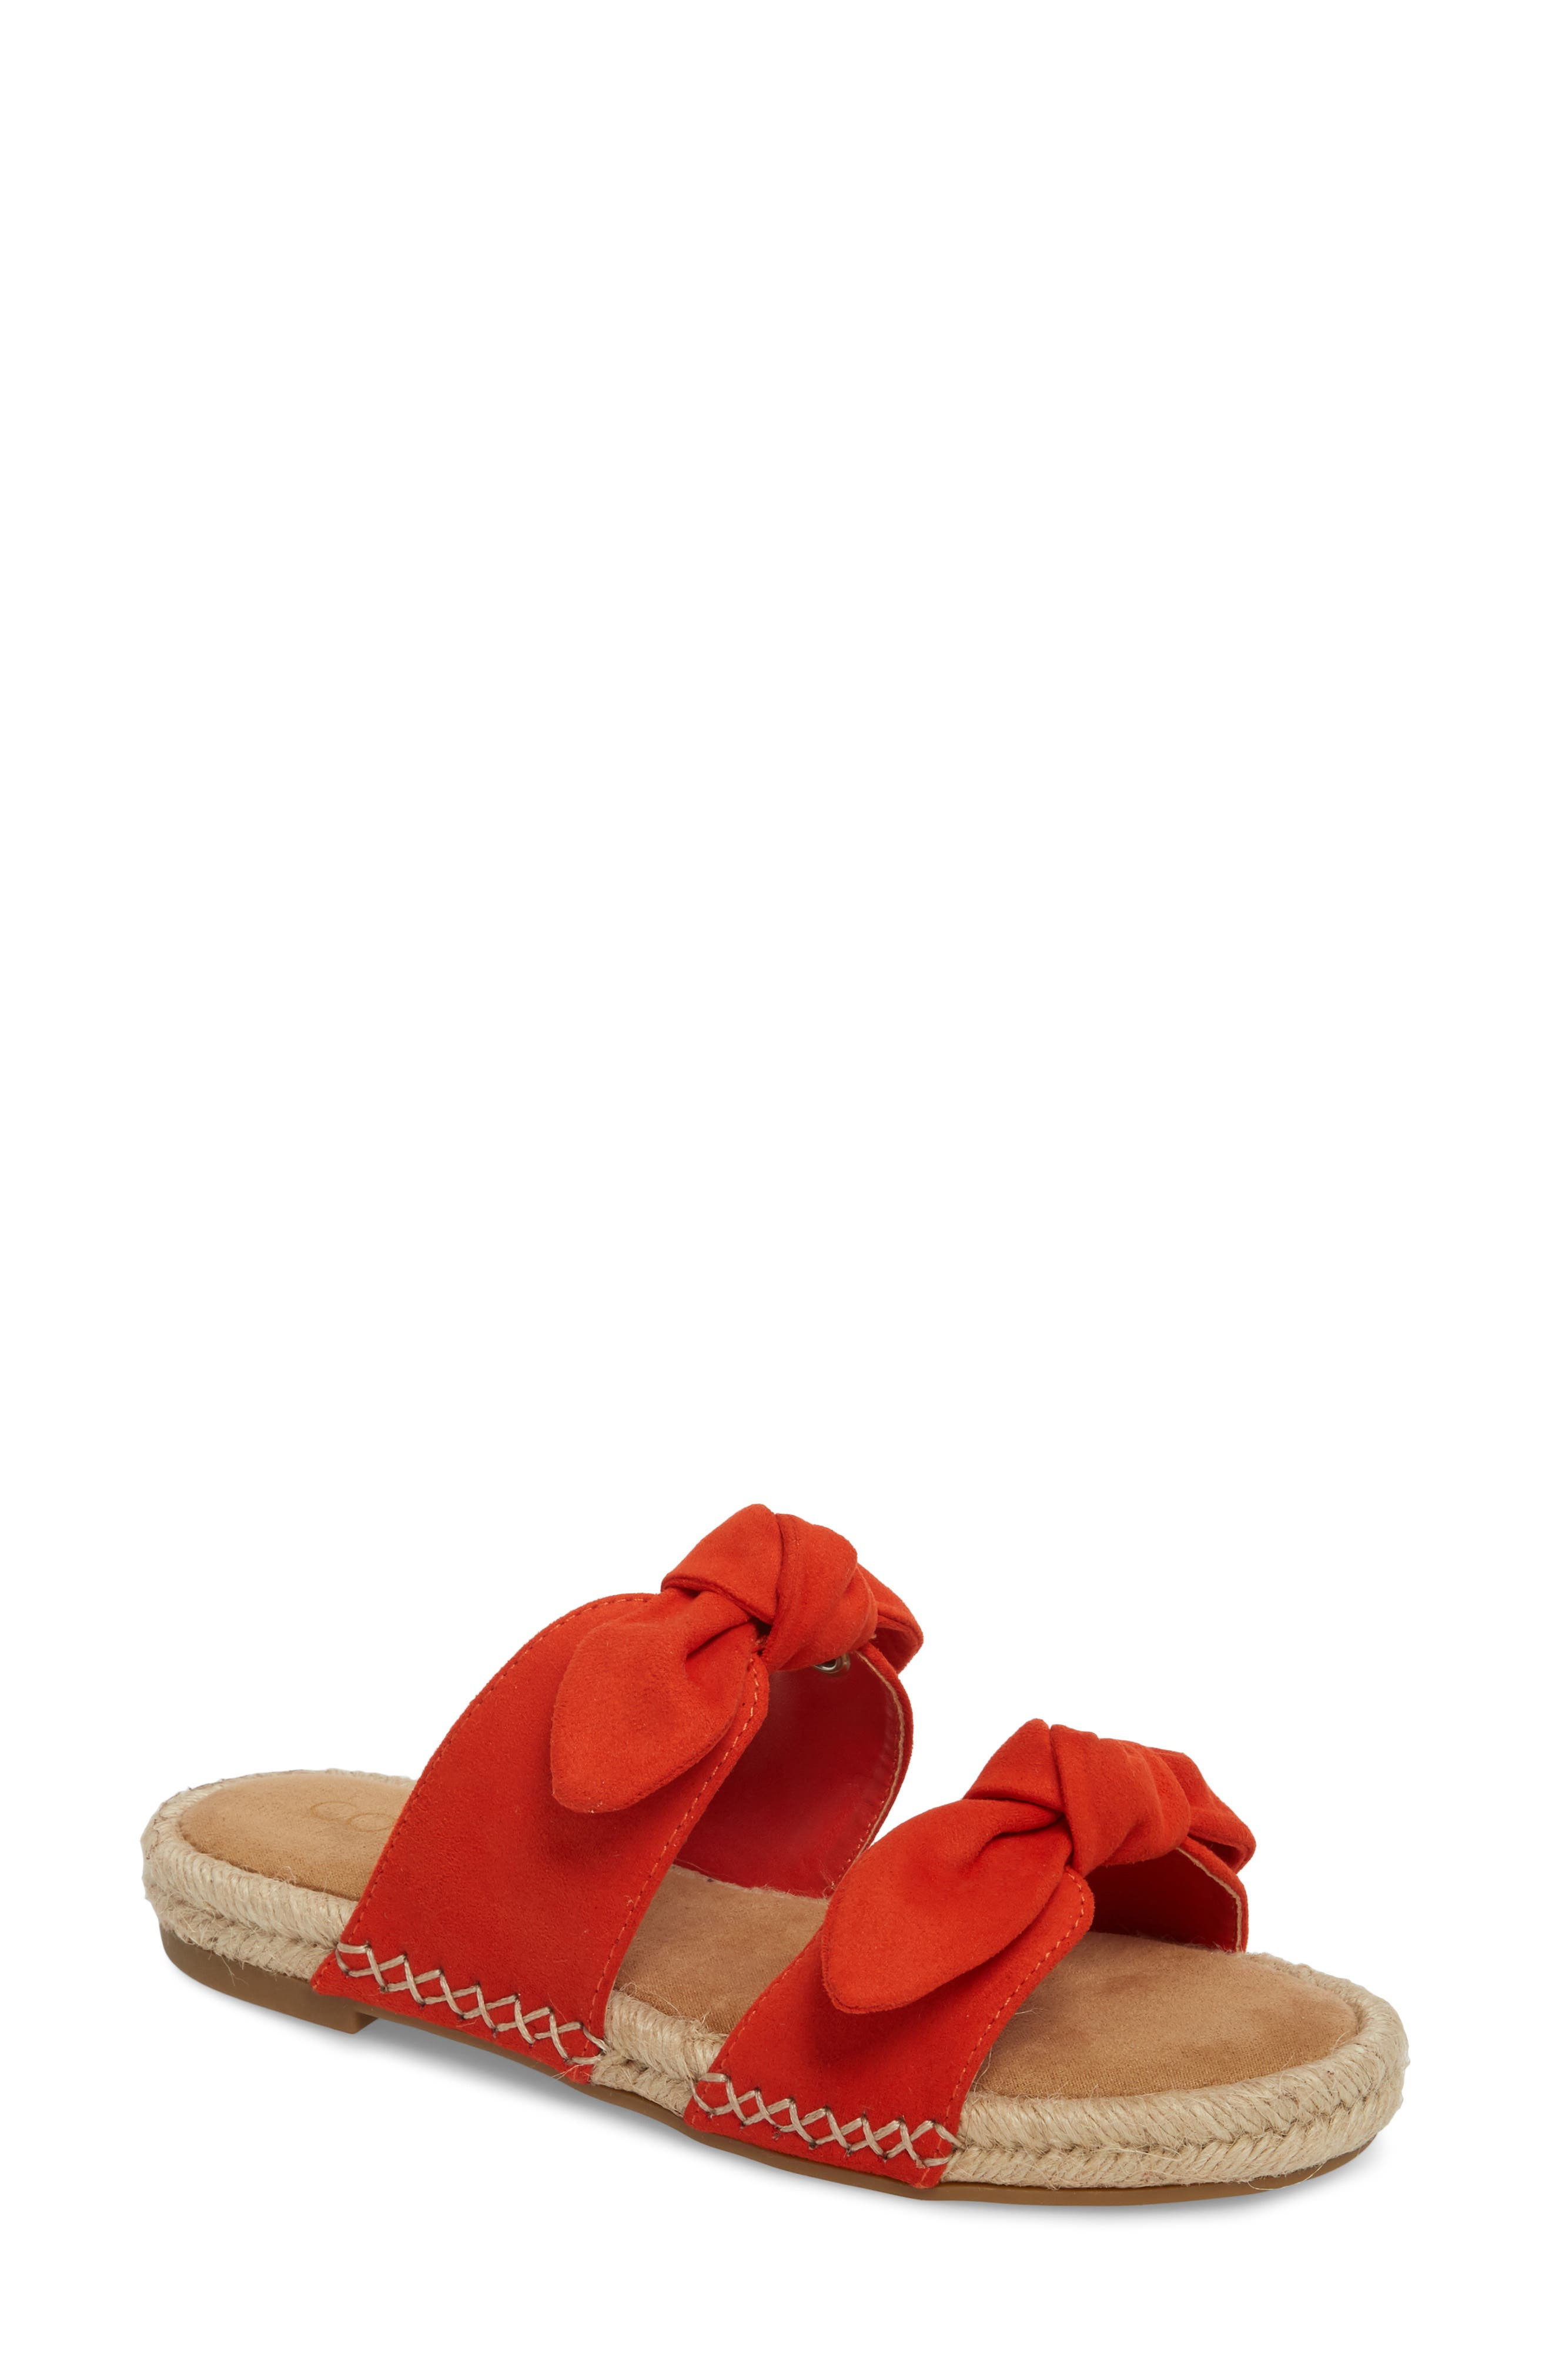 Gianna Espadrille Slide Sandal,                         Main,                         color, Fire Suede